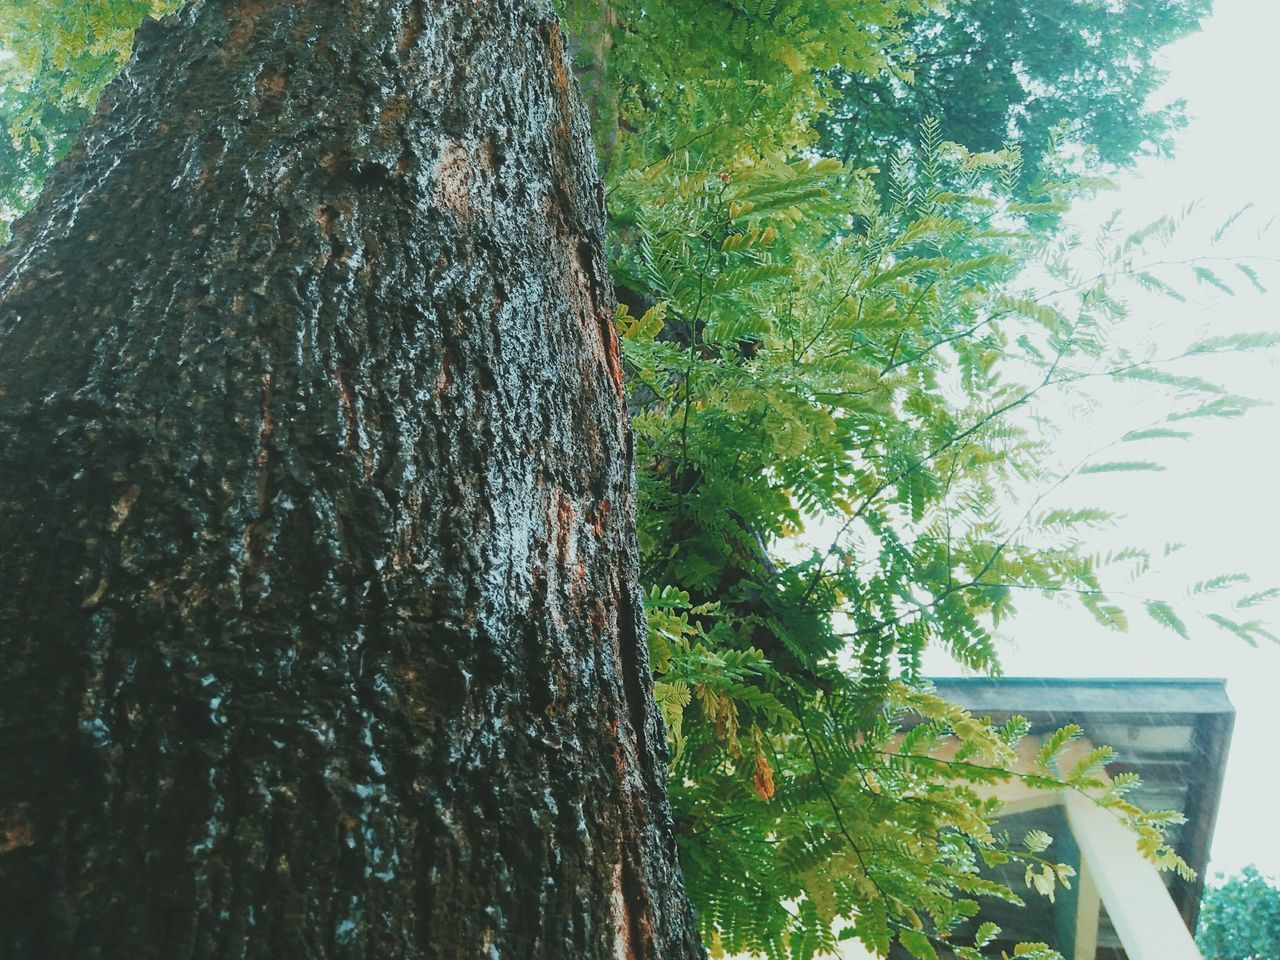 tree trunk, tree, day, growth, nature, no people, outdoors, bark, textured, low angle view, forest, close-up, beauty in nature